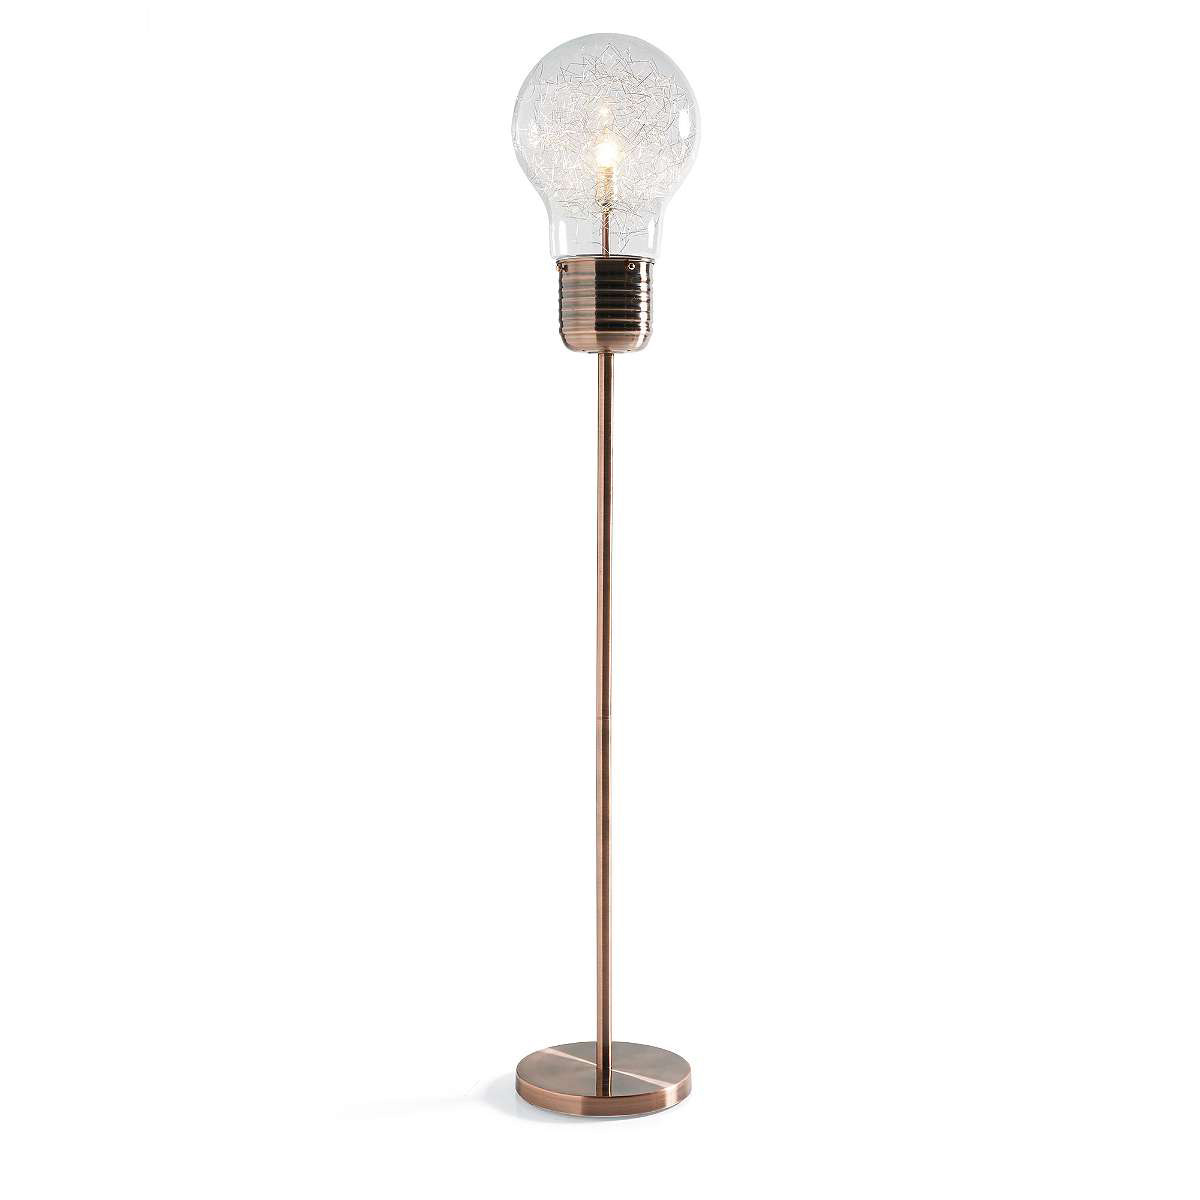 Edison Light Bulb Floor Lamp - The Green Head